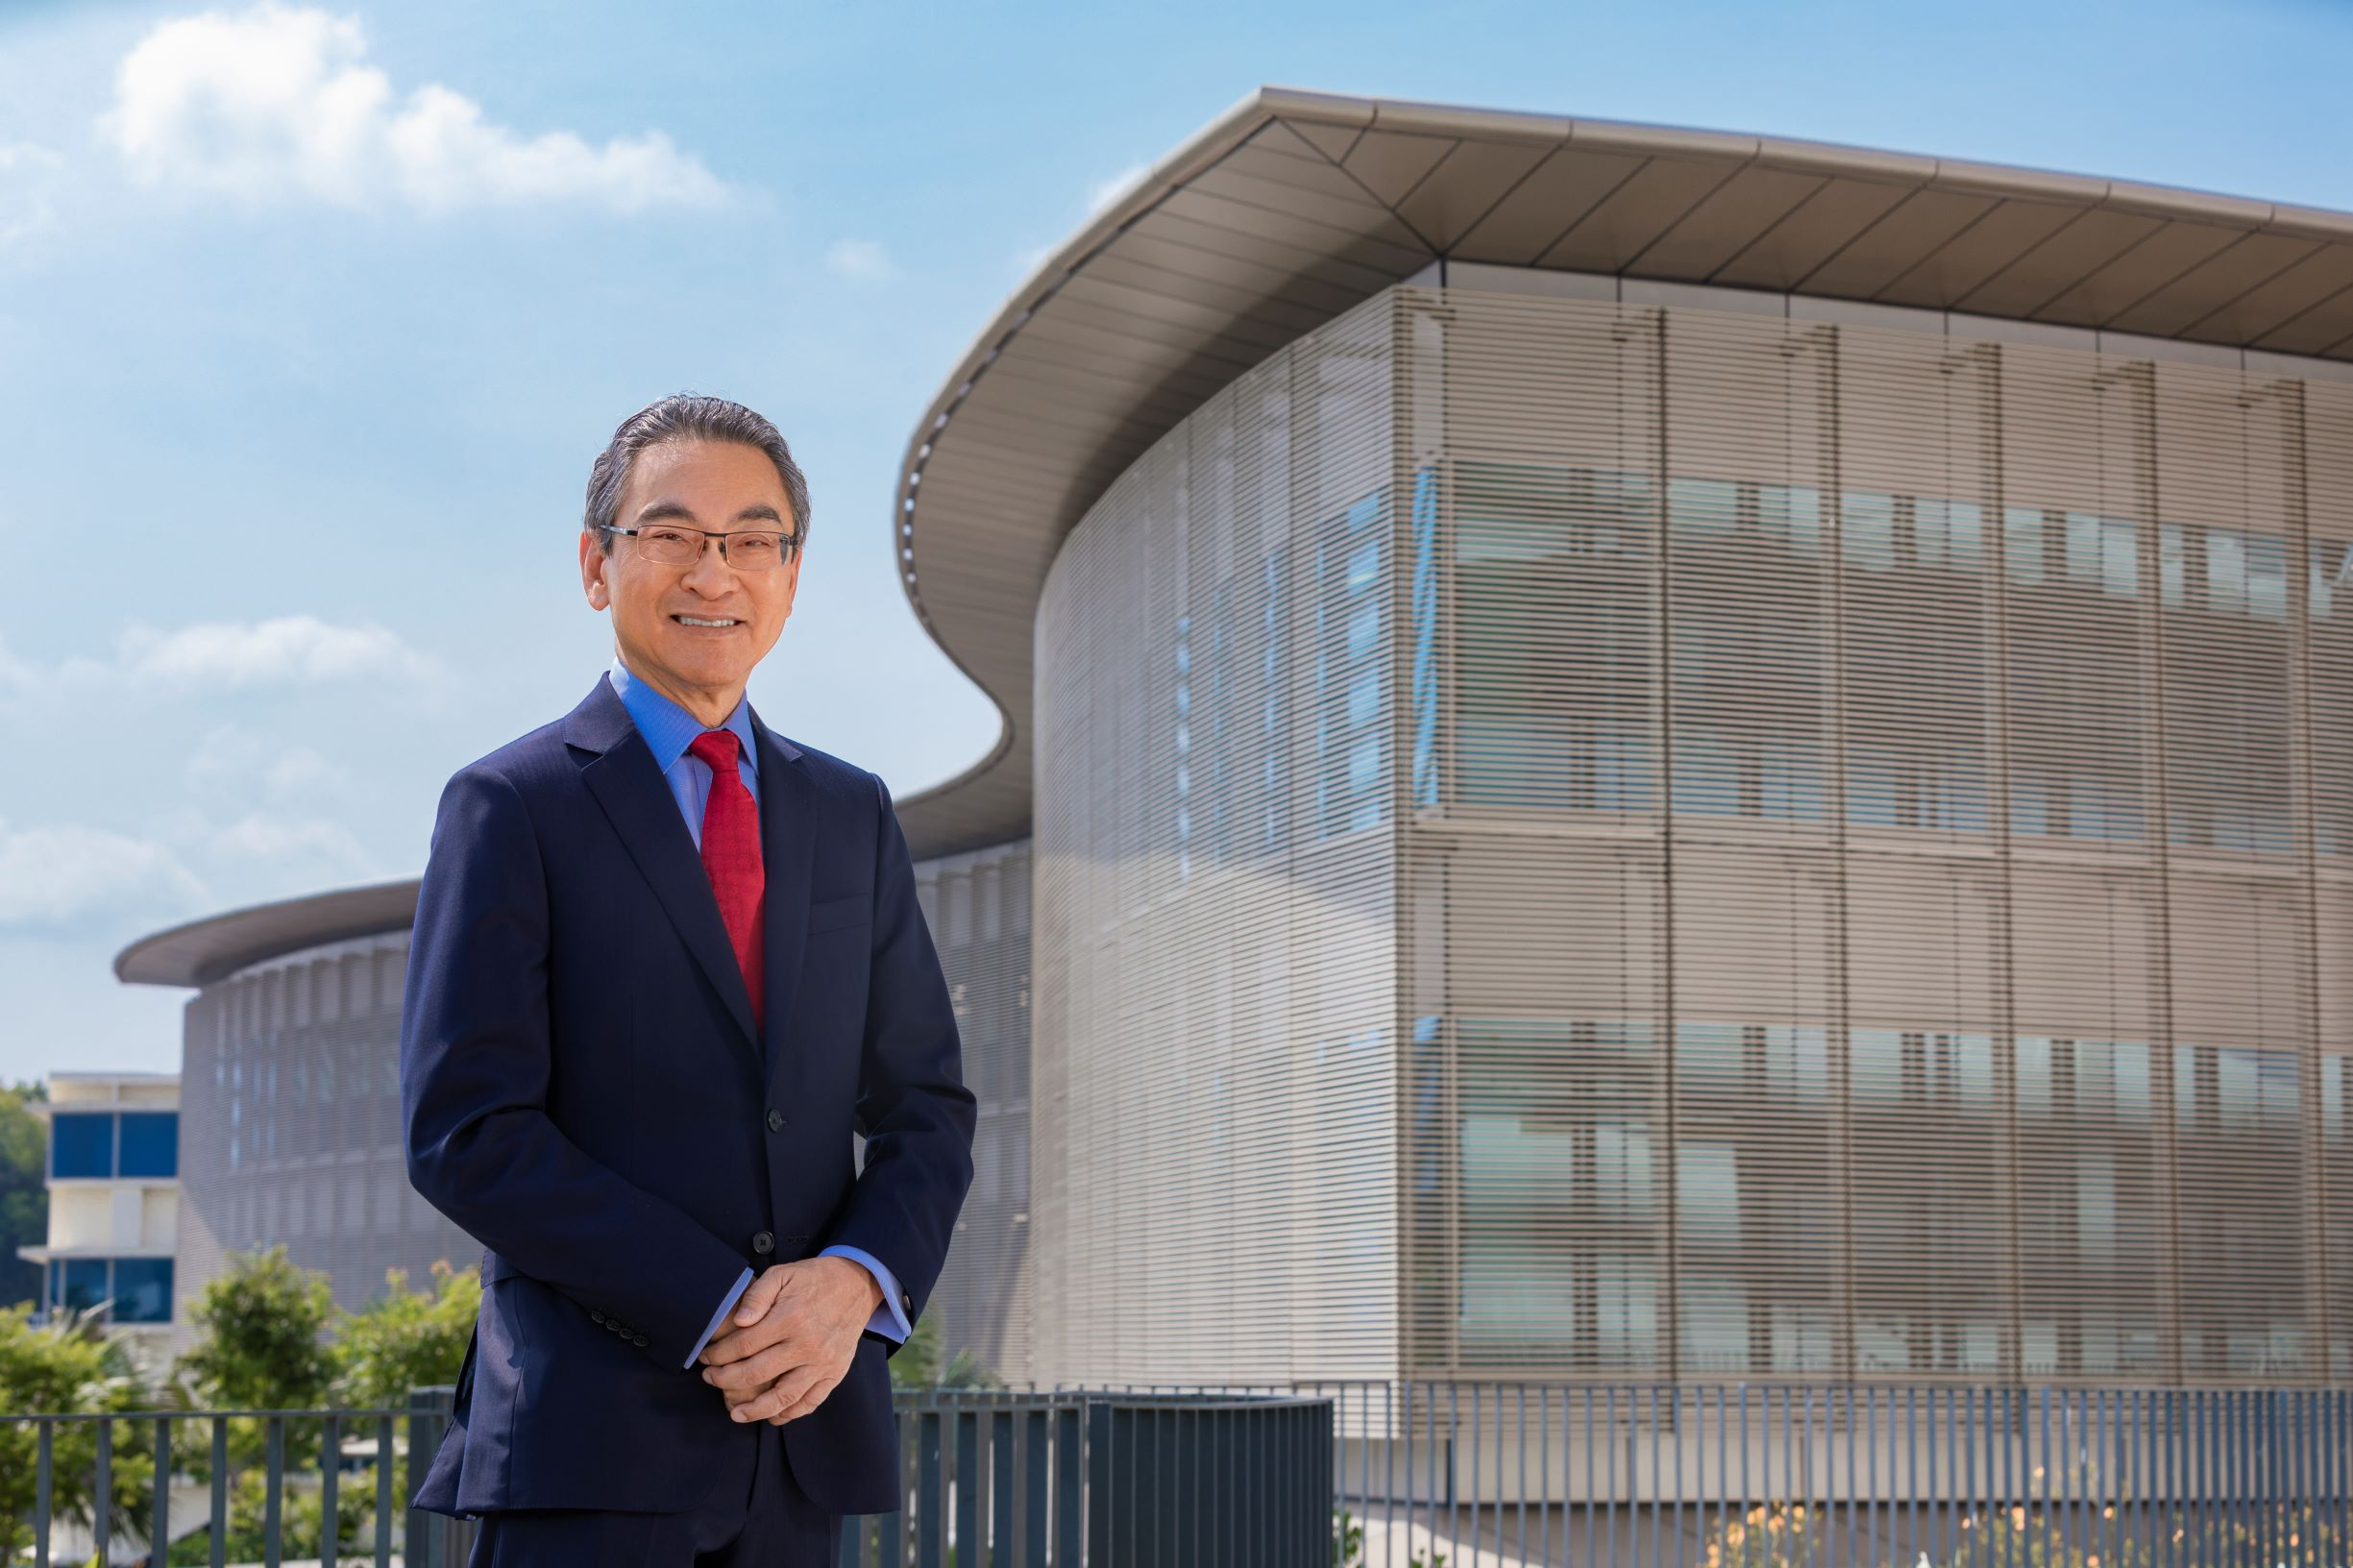 He also pushed for administrative reforms of the University to create more efficient and advanced administration systems to support NTU's growth.